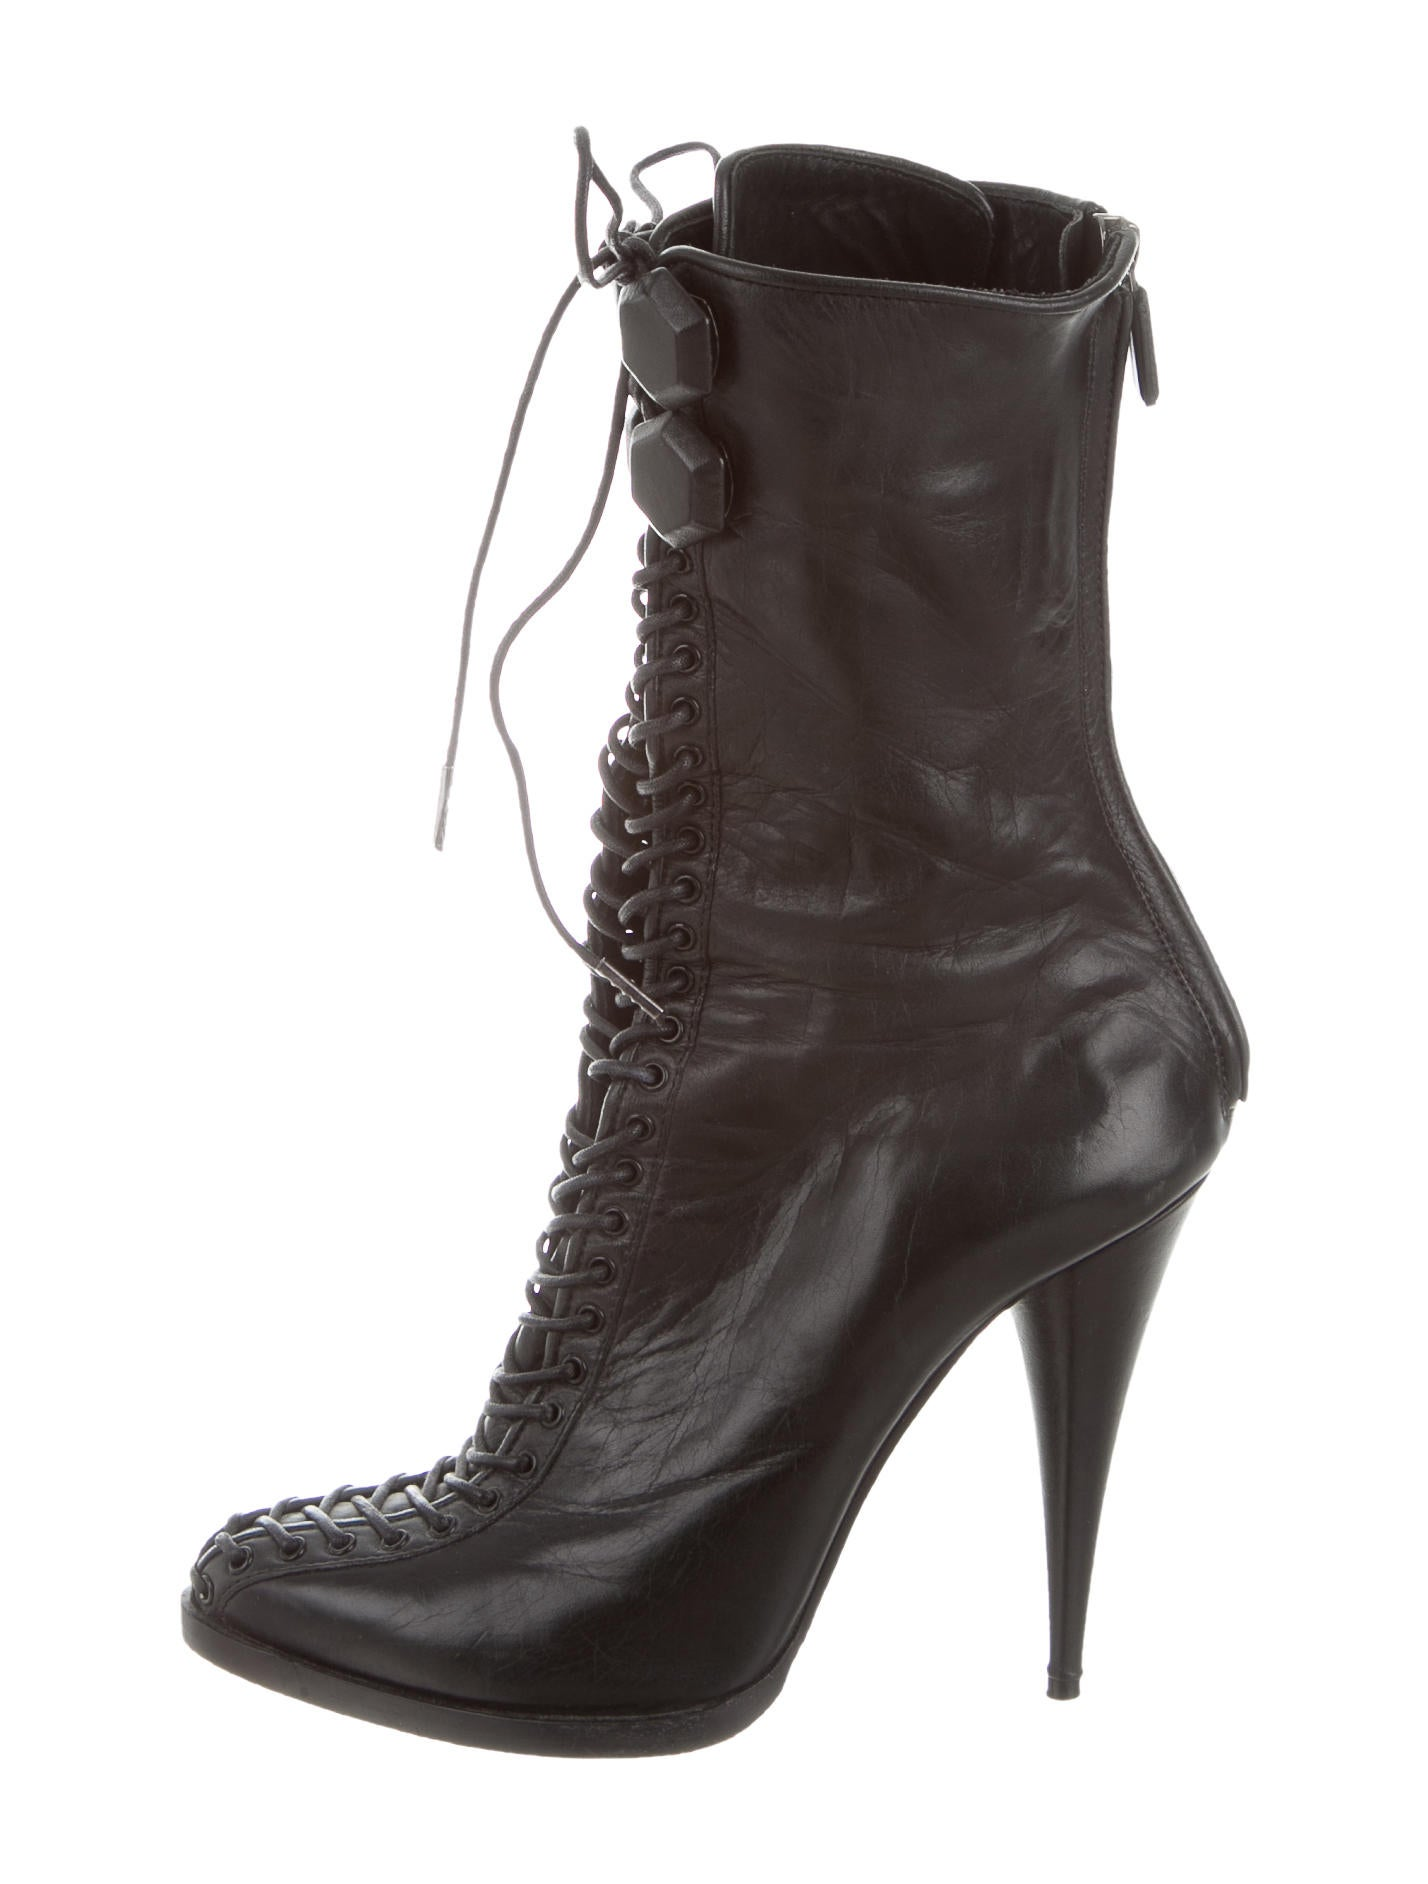 givenchy lace up ankle boots shoes giv40477 the realreal